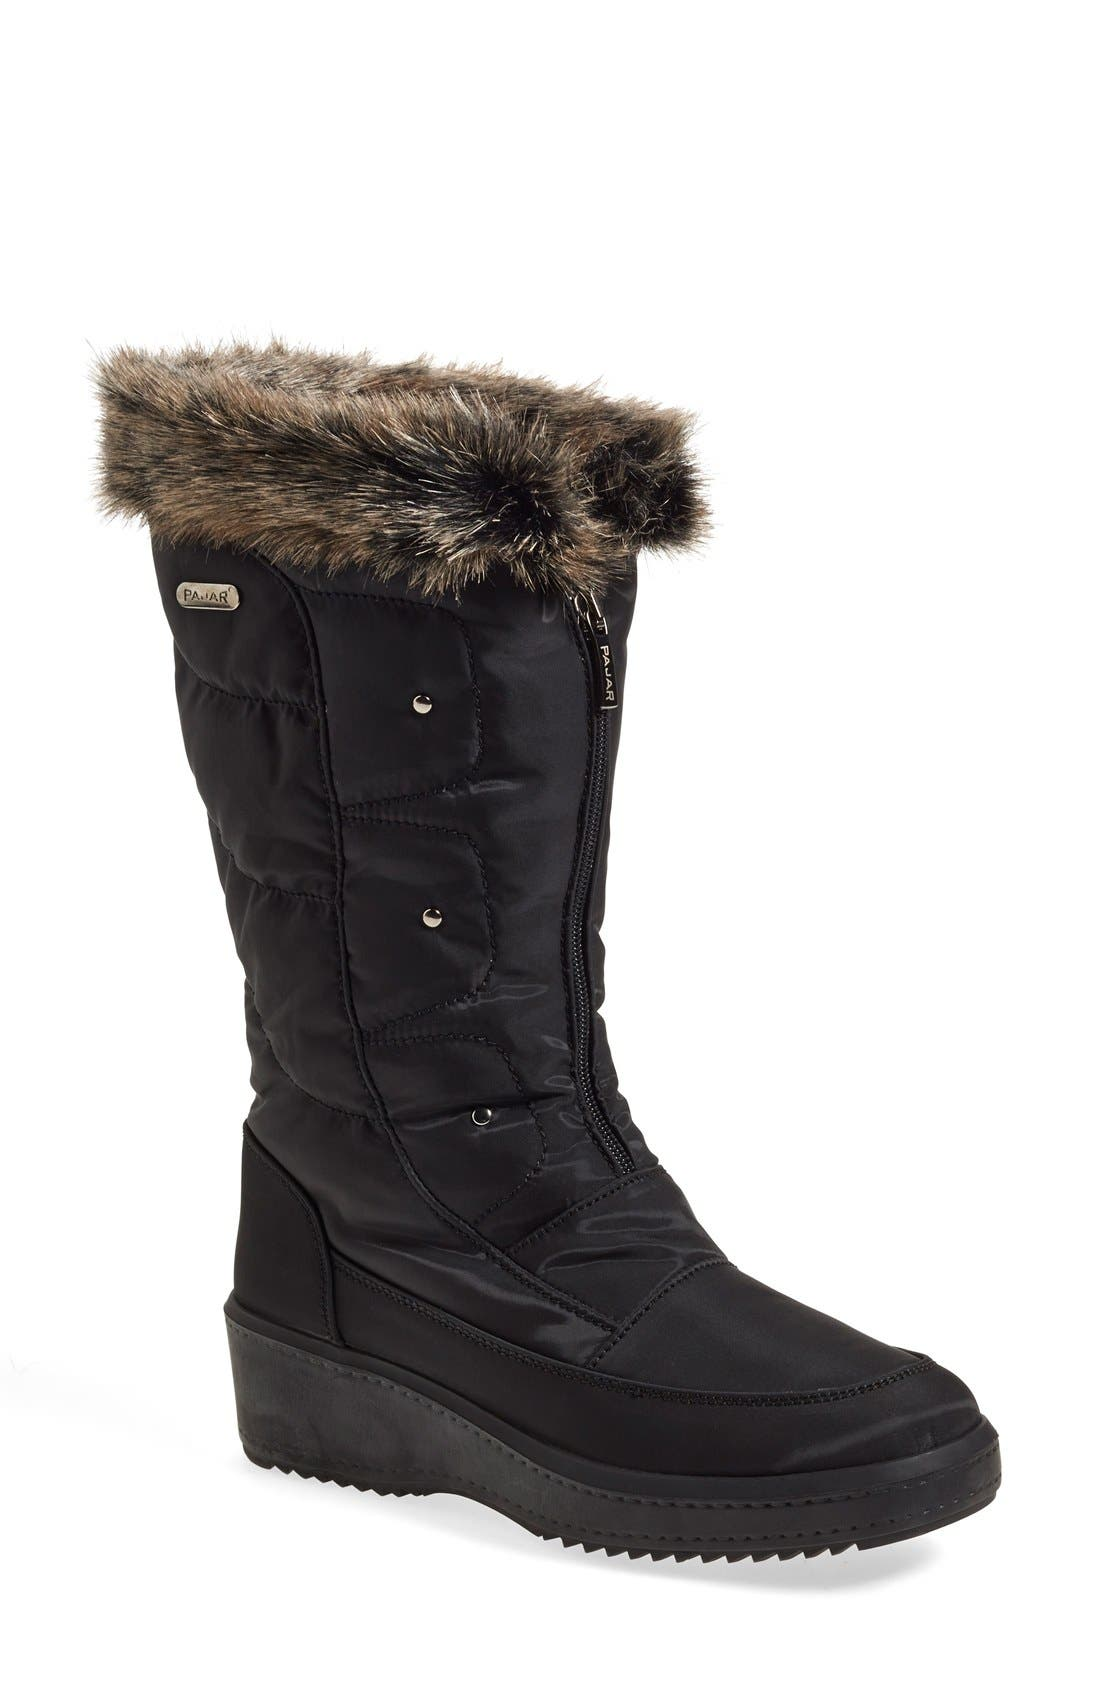 'Louise' Weatherproof Boot,                             Main thumbnail 1, color,                             Black Fabric